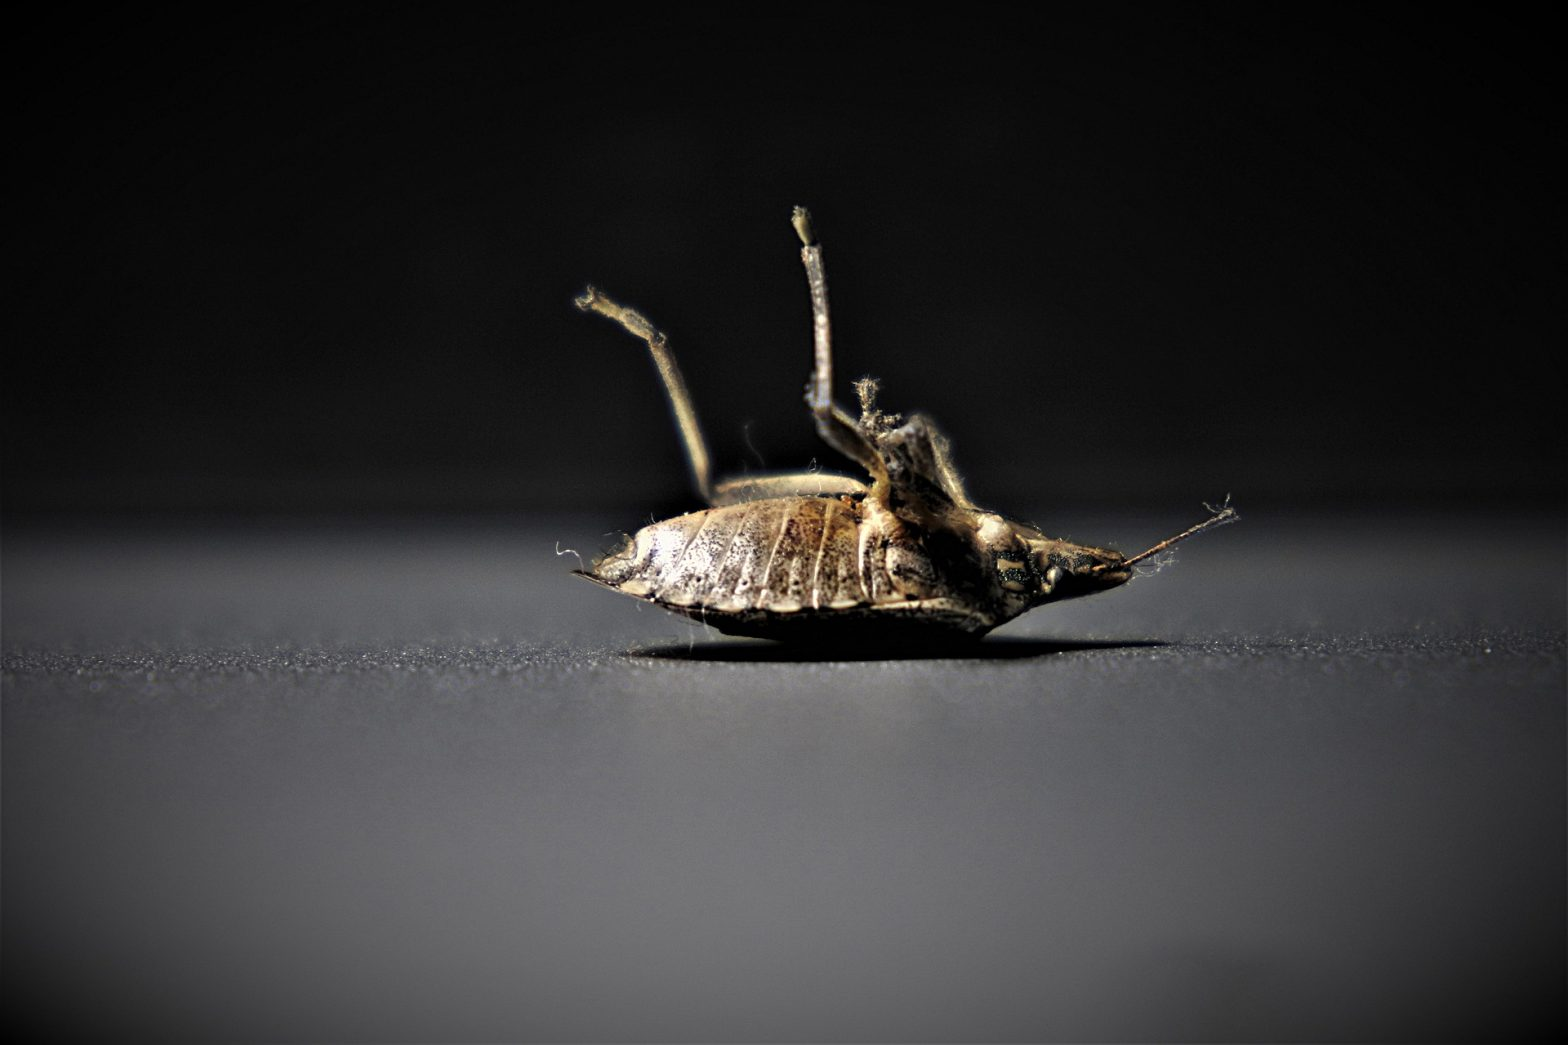 Why Is It So Hard To Get Rid Of Bed Bugs?